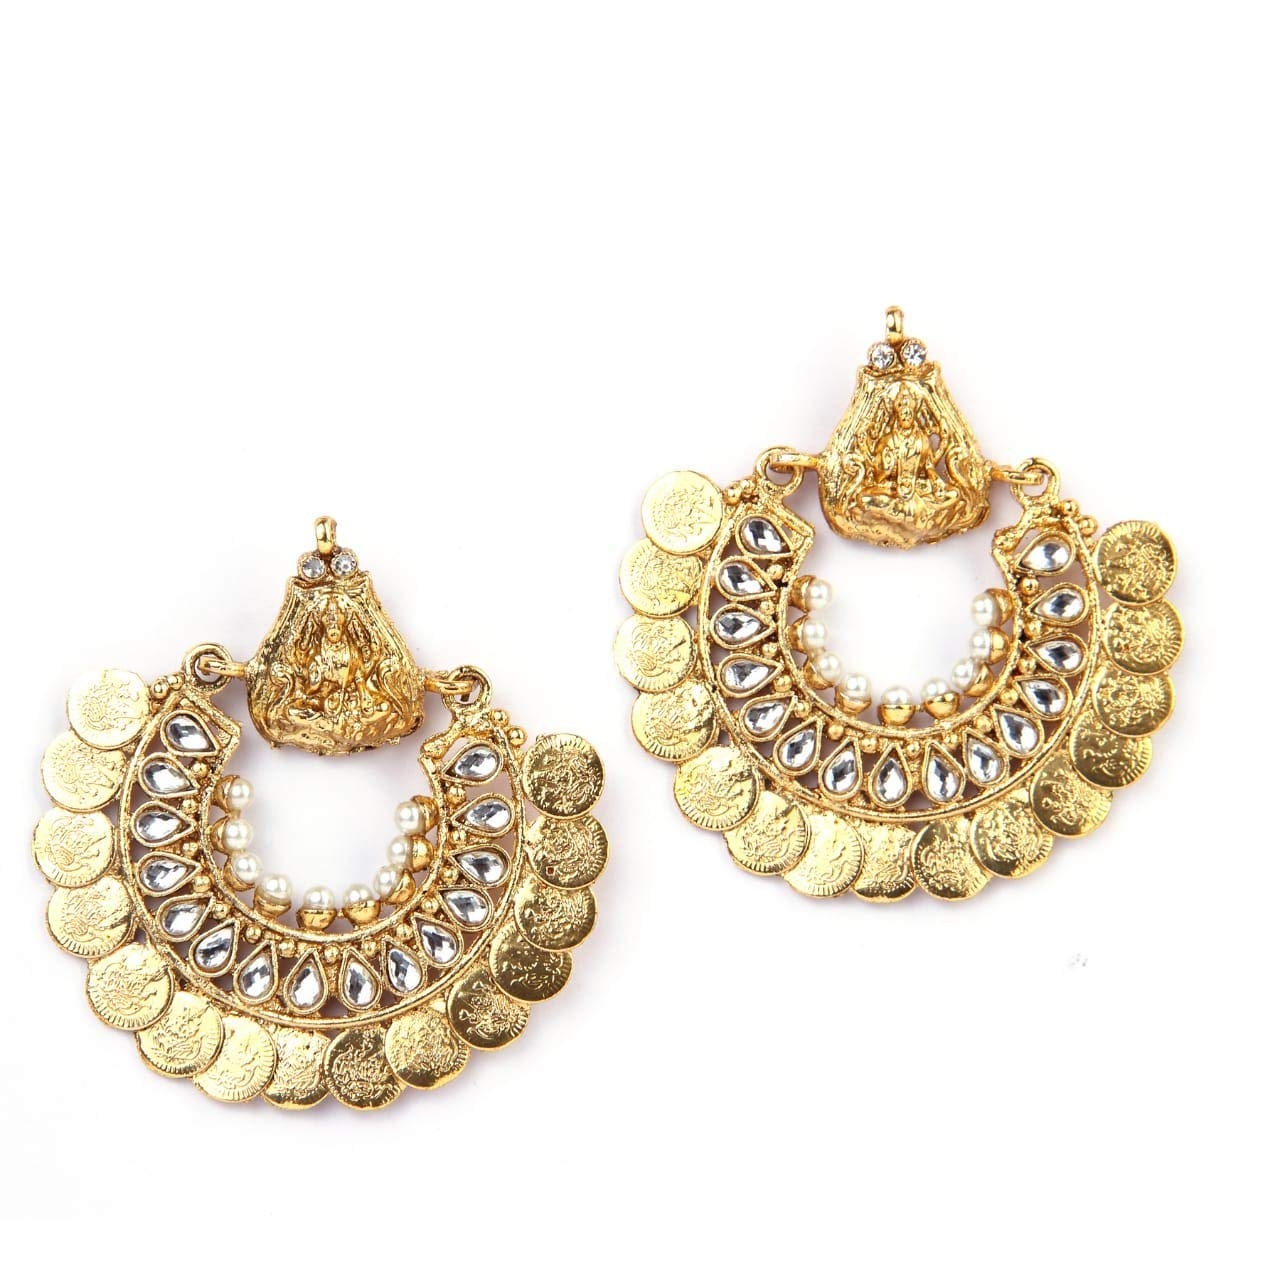 9e4ec955a Buy Deepika's Ramleela Earring Online at Low Prices in India | Amazon  Jewellery Store - Amazon.in